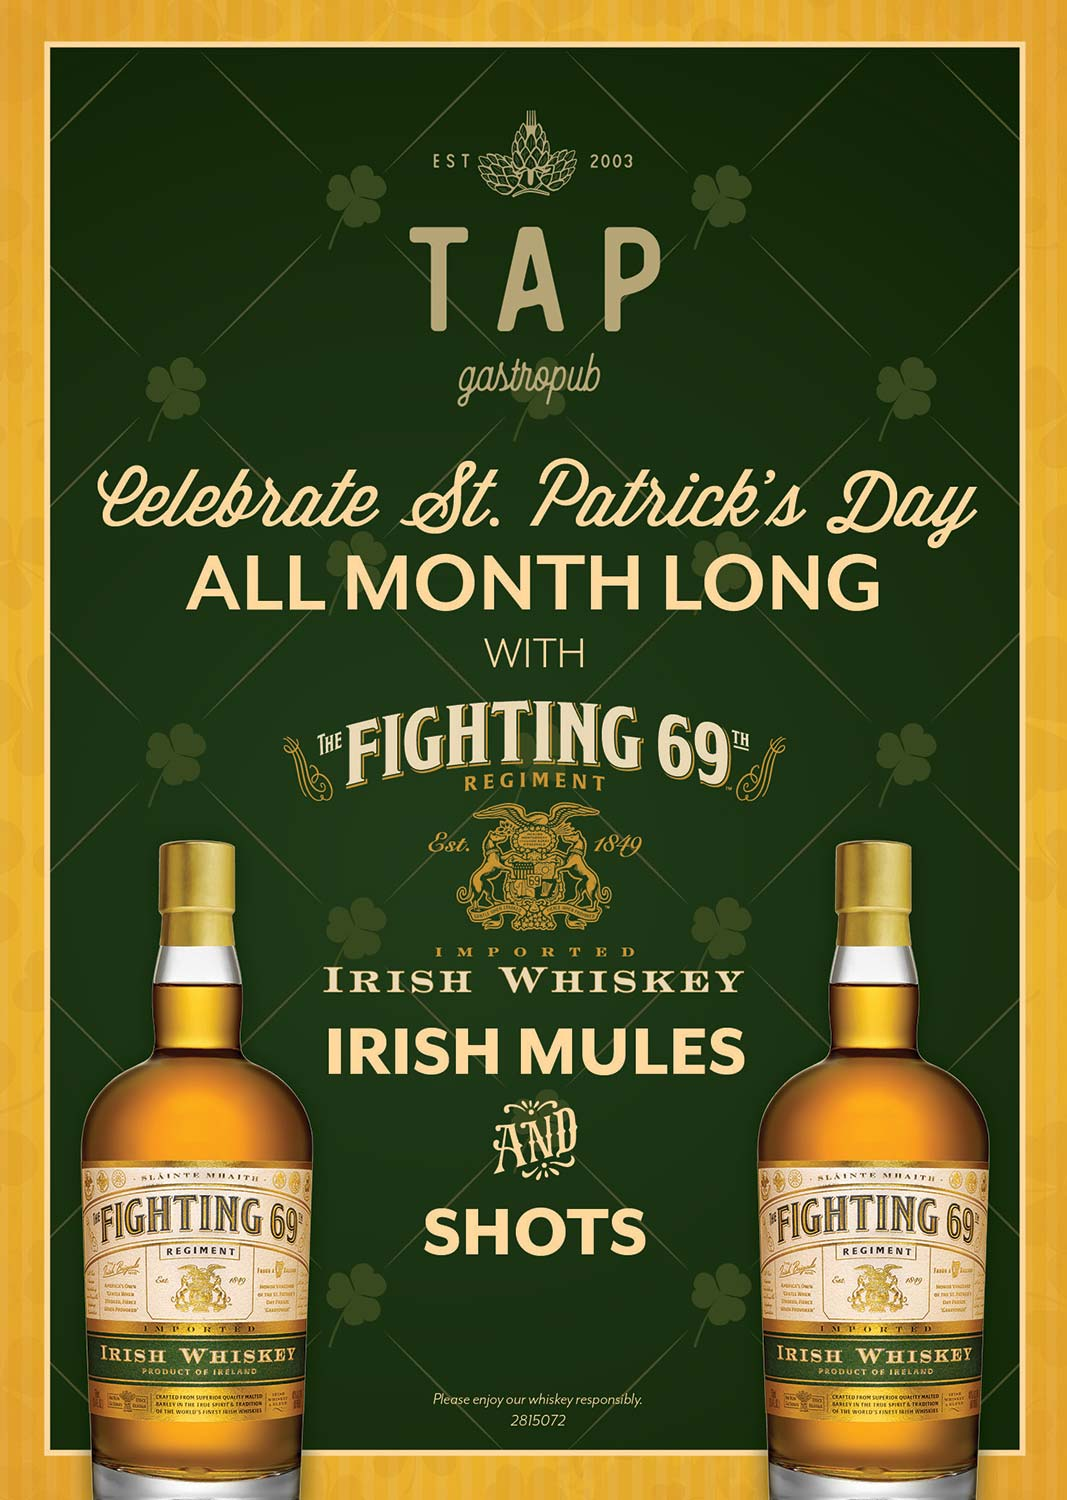 St. Patrick's Day flyer with Fighting 69 Whiskey